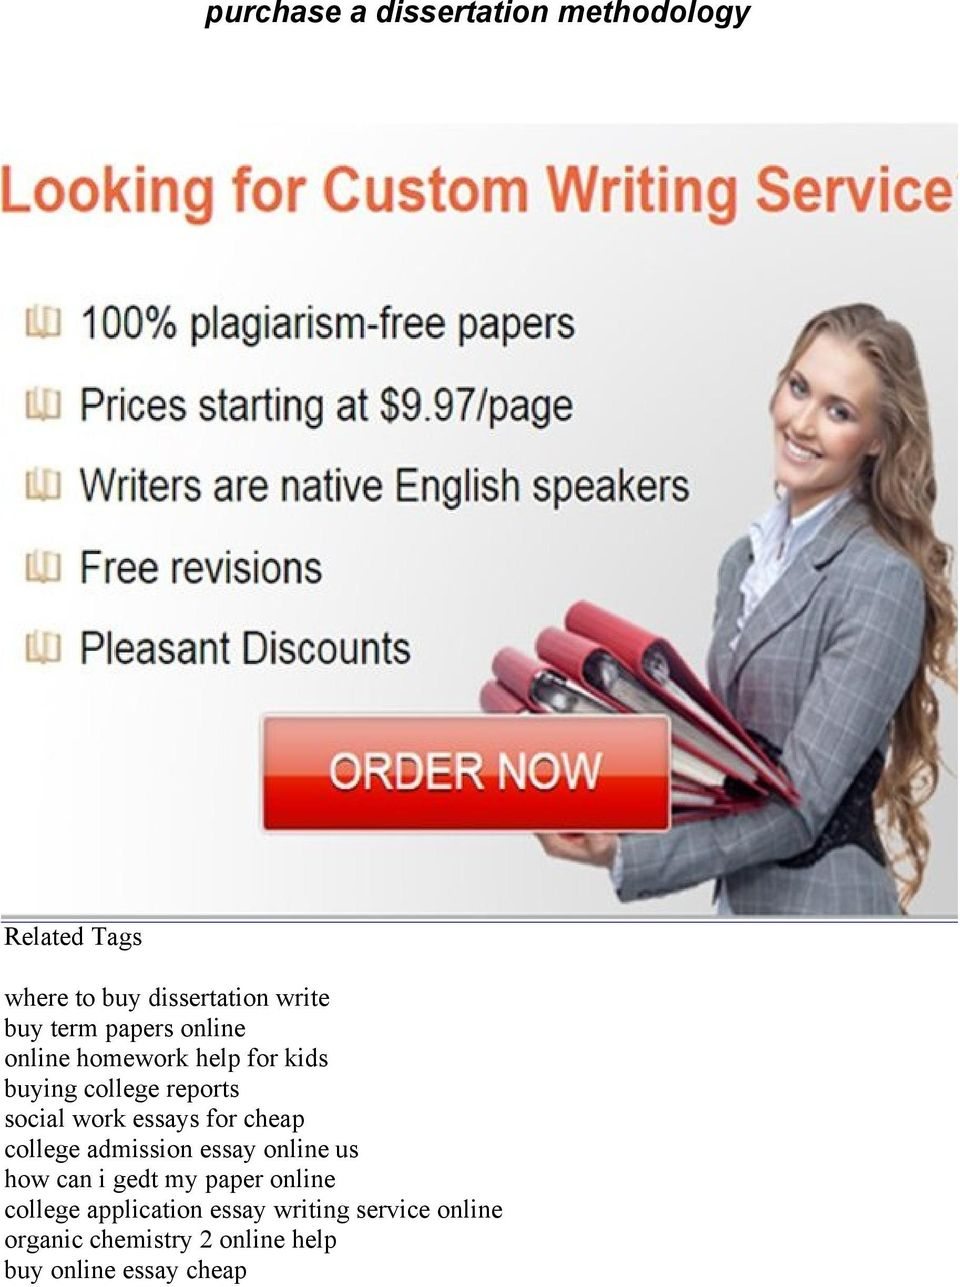 essays for cheap college admission essay online us how can i gedt my paper online